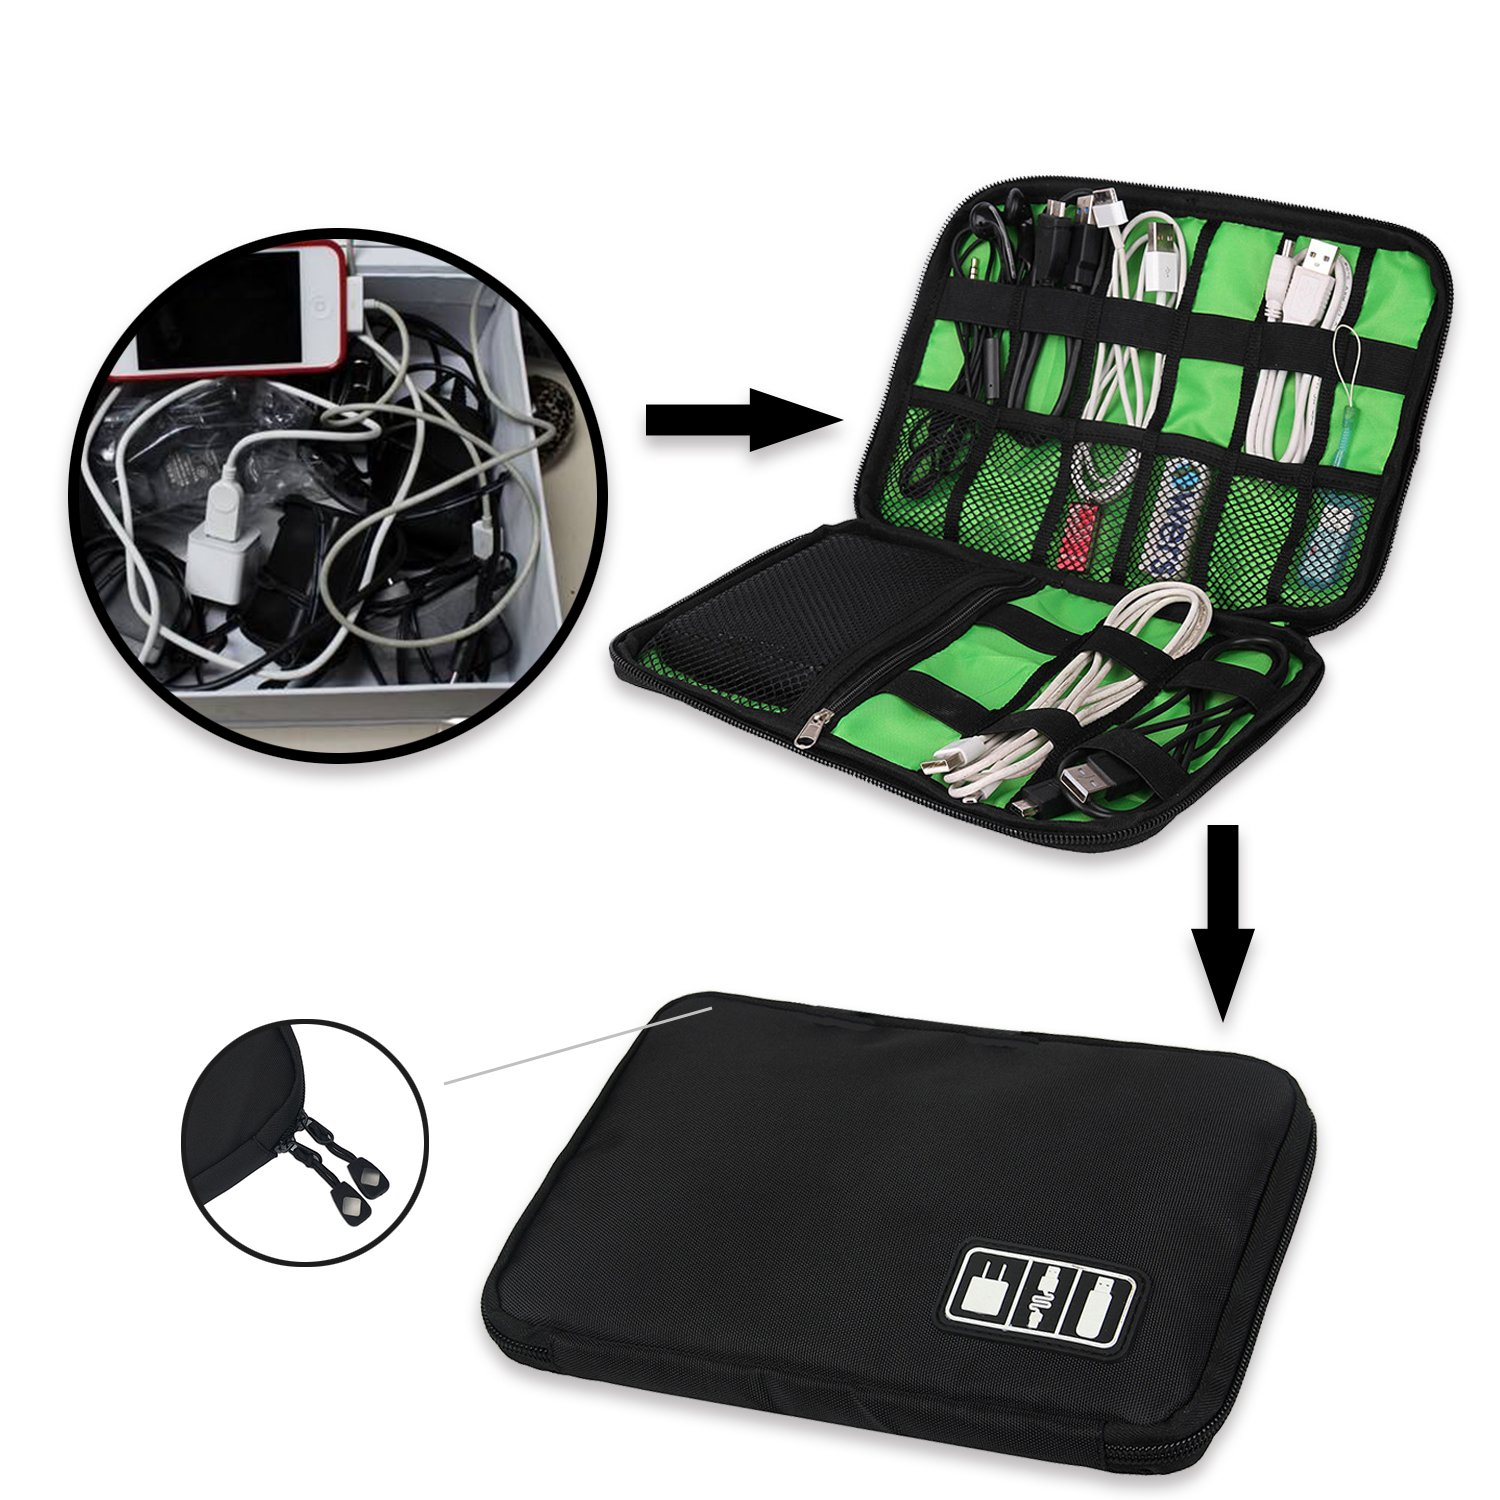 Travel Universal Cable Organizer Electronics Accessories Cases for Various USB, Phone, Charger and Cable, Black by zhenrong (Image #2)